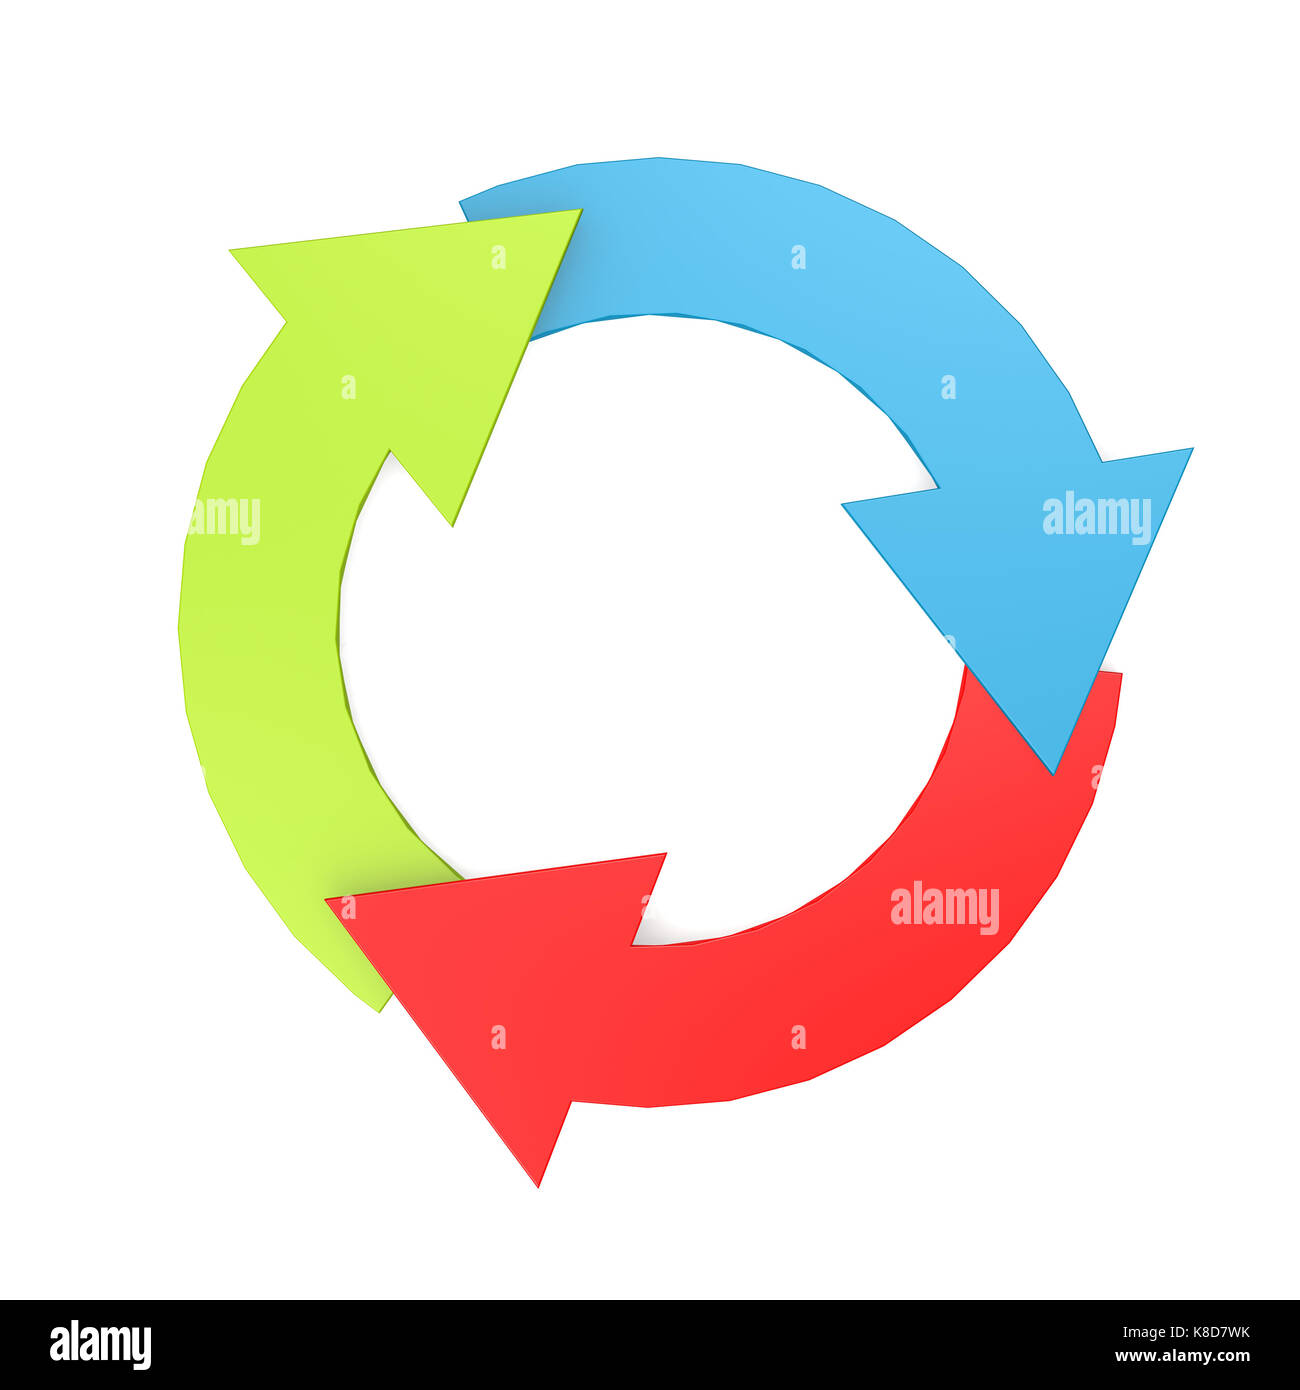 White Arrows Blue Circles Stock Photos White Arrows Blue Circles